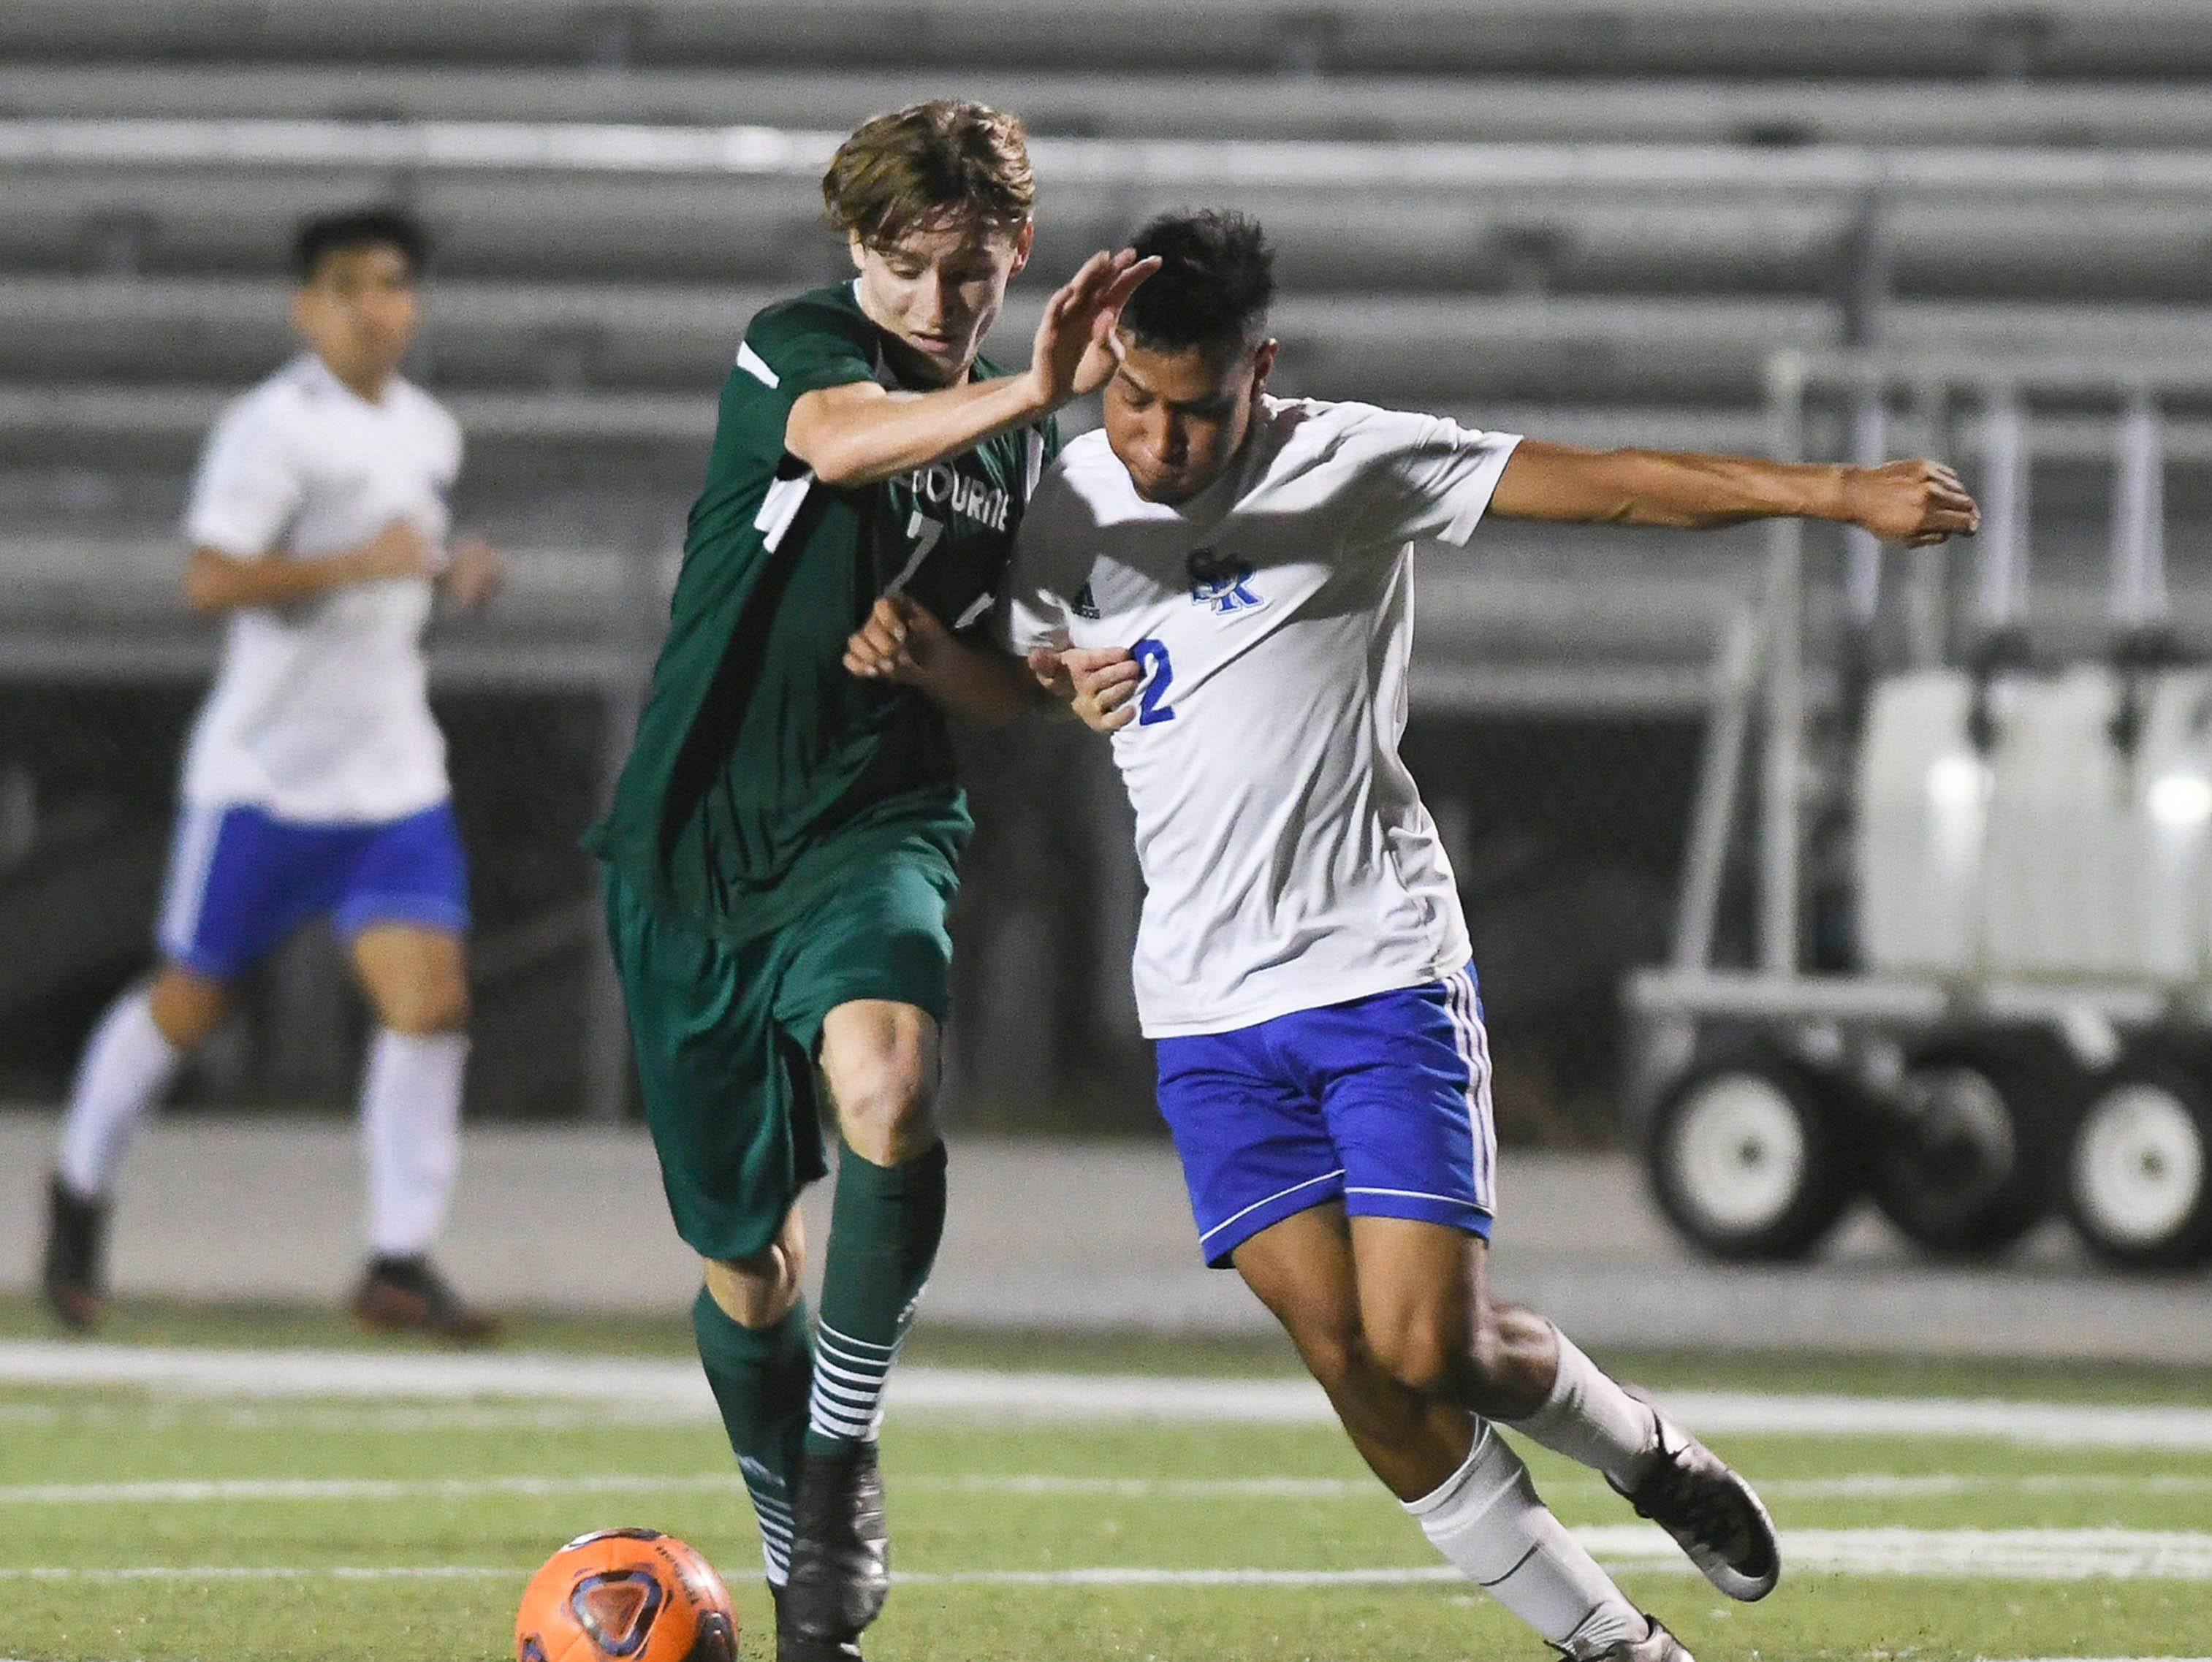 Melbourne's Marcos Gonzalez battles with Max Marcos of Sebastian River during Friday's game in Melbourne.